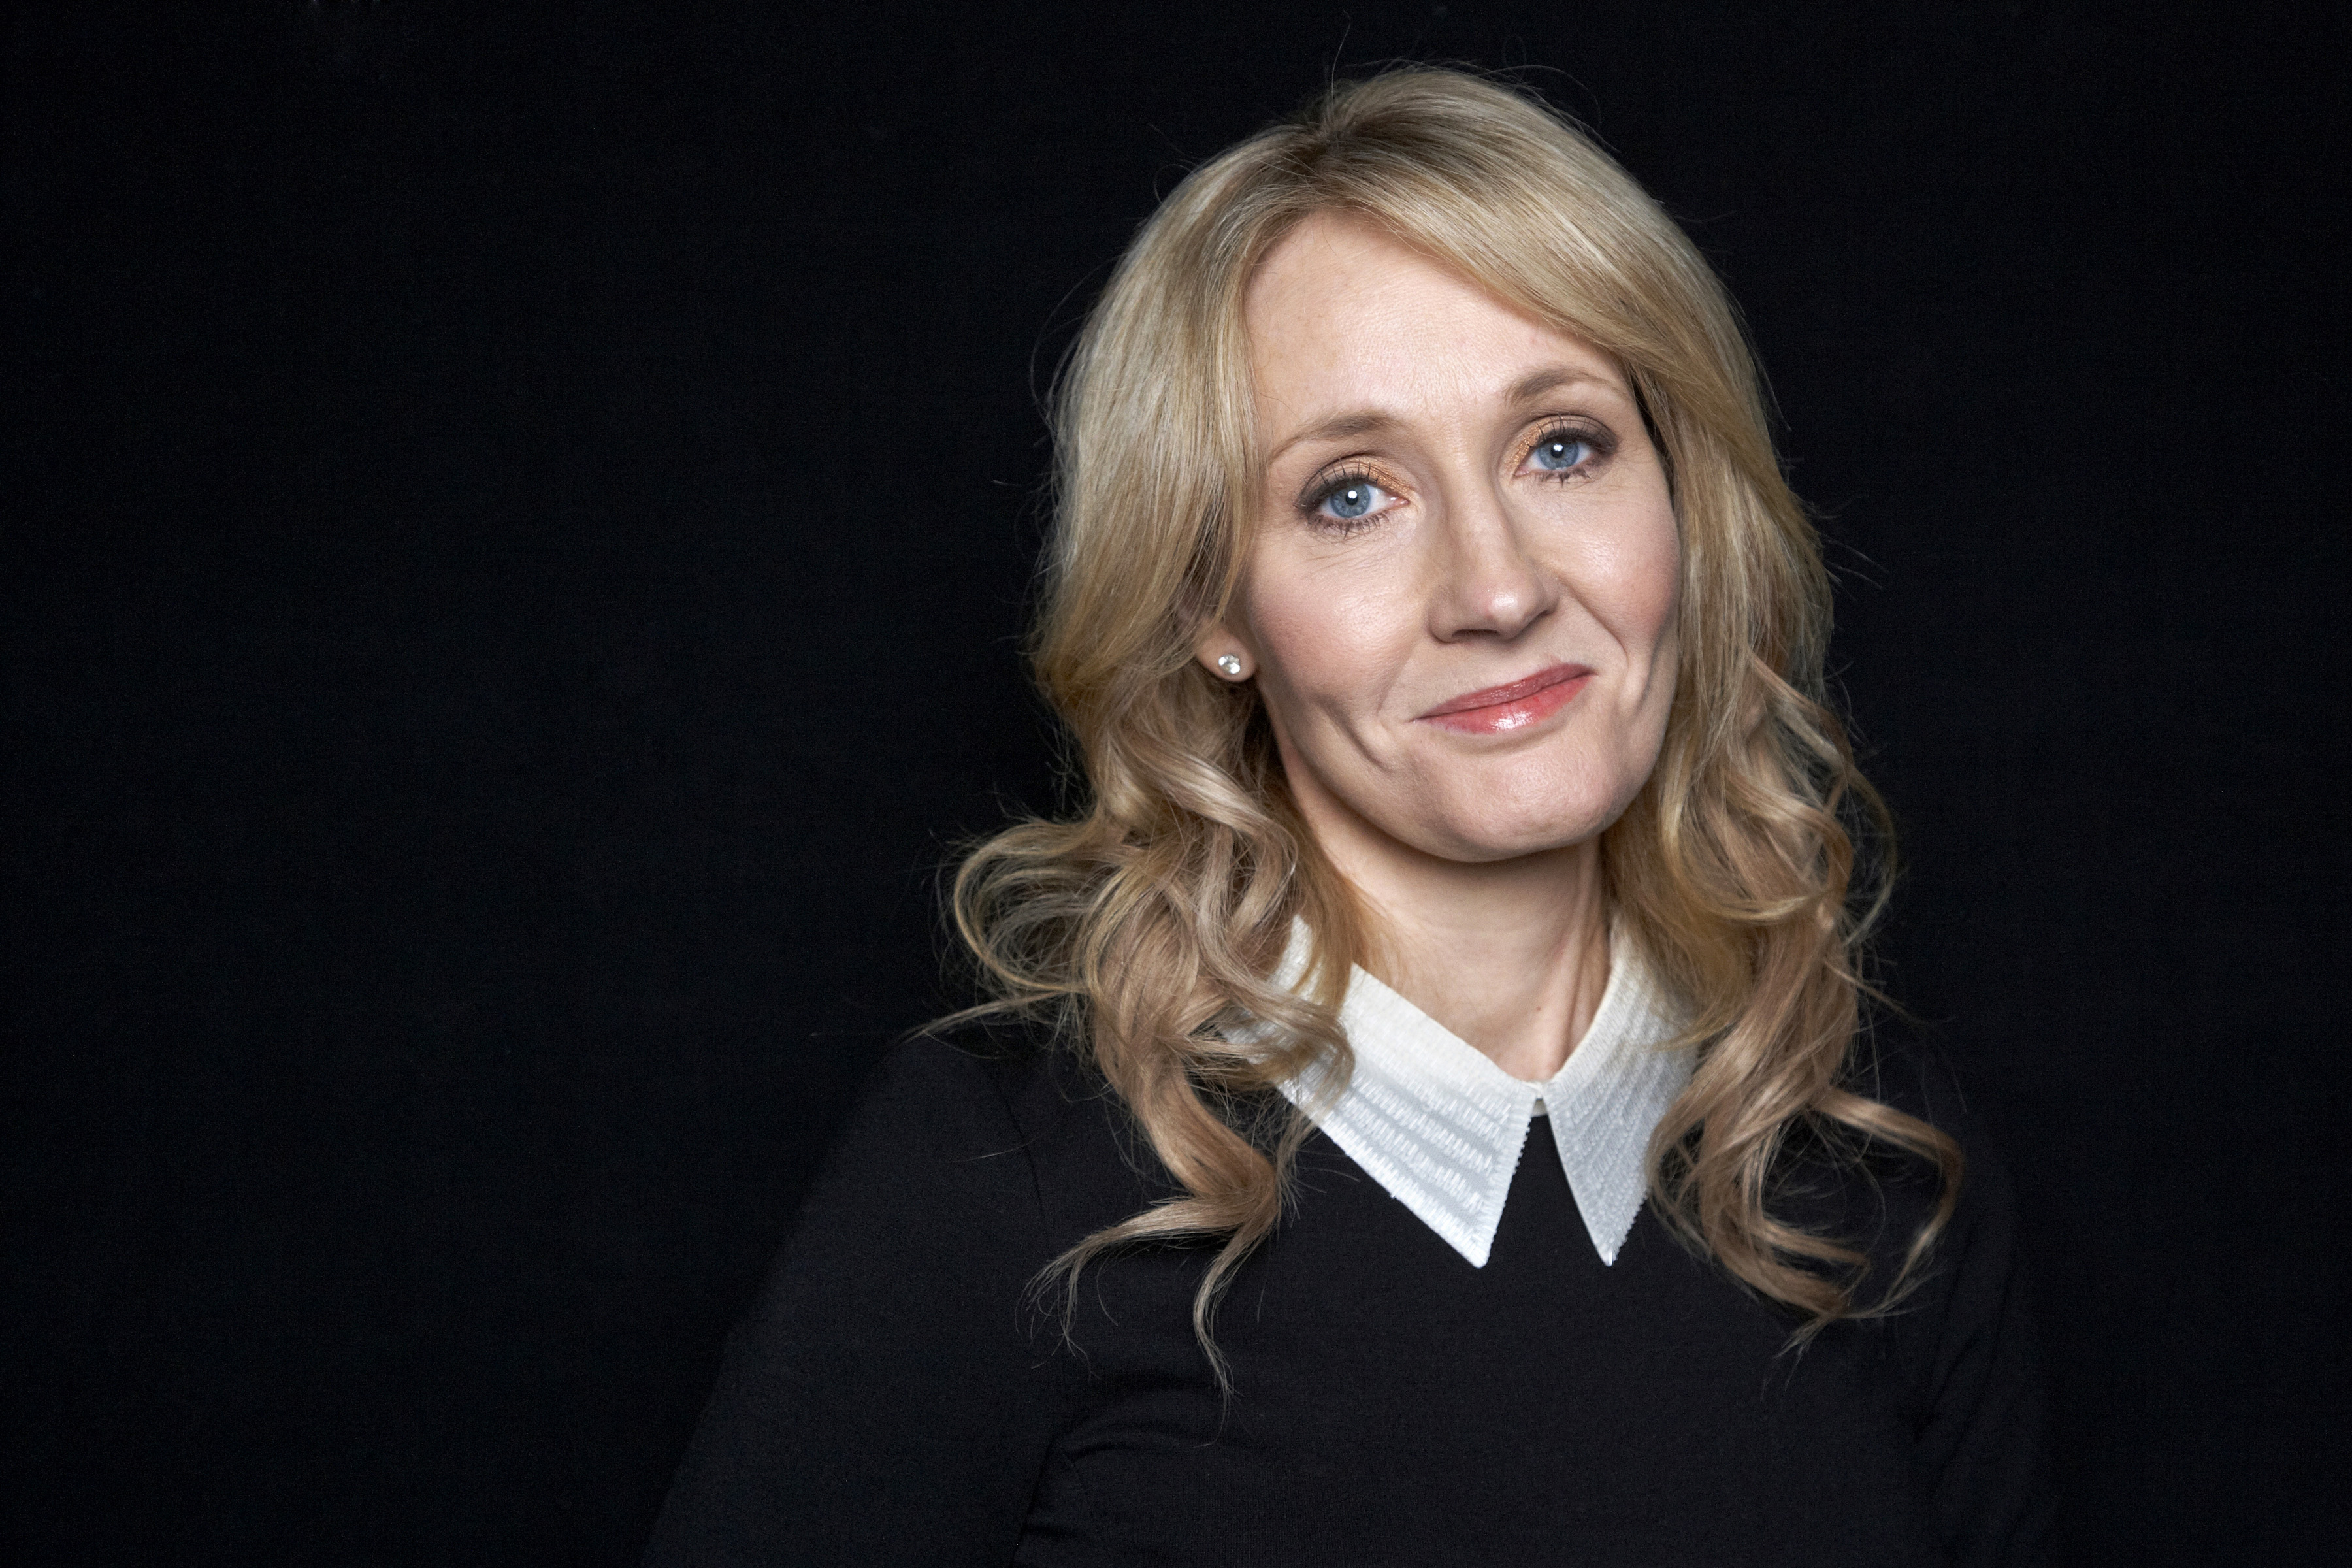 J.K. Rowling poses for a photo during an appearance at The David H. Koch Theater in New York on Oct. 16, 2012.